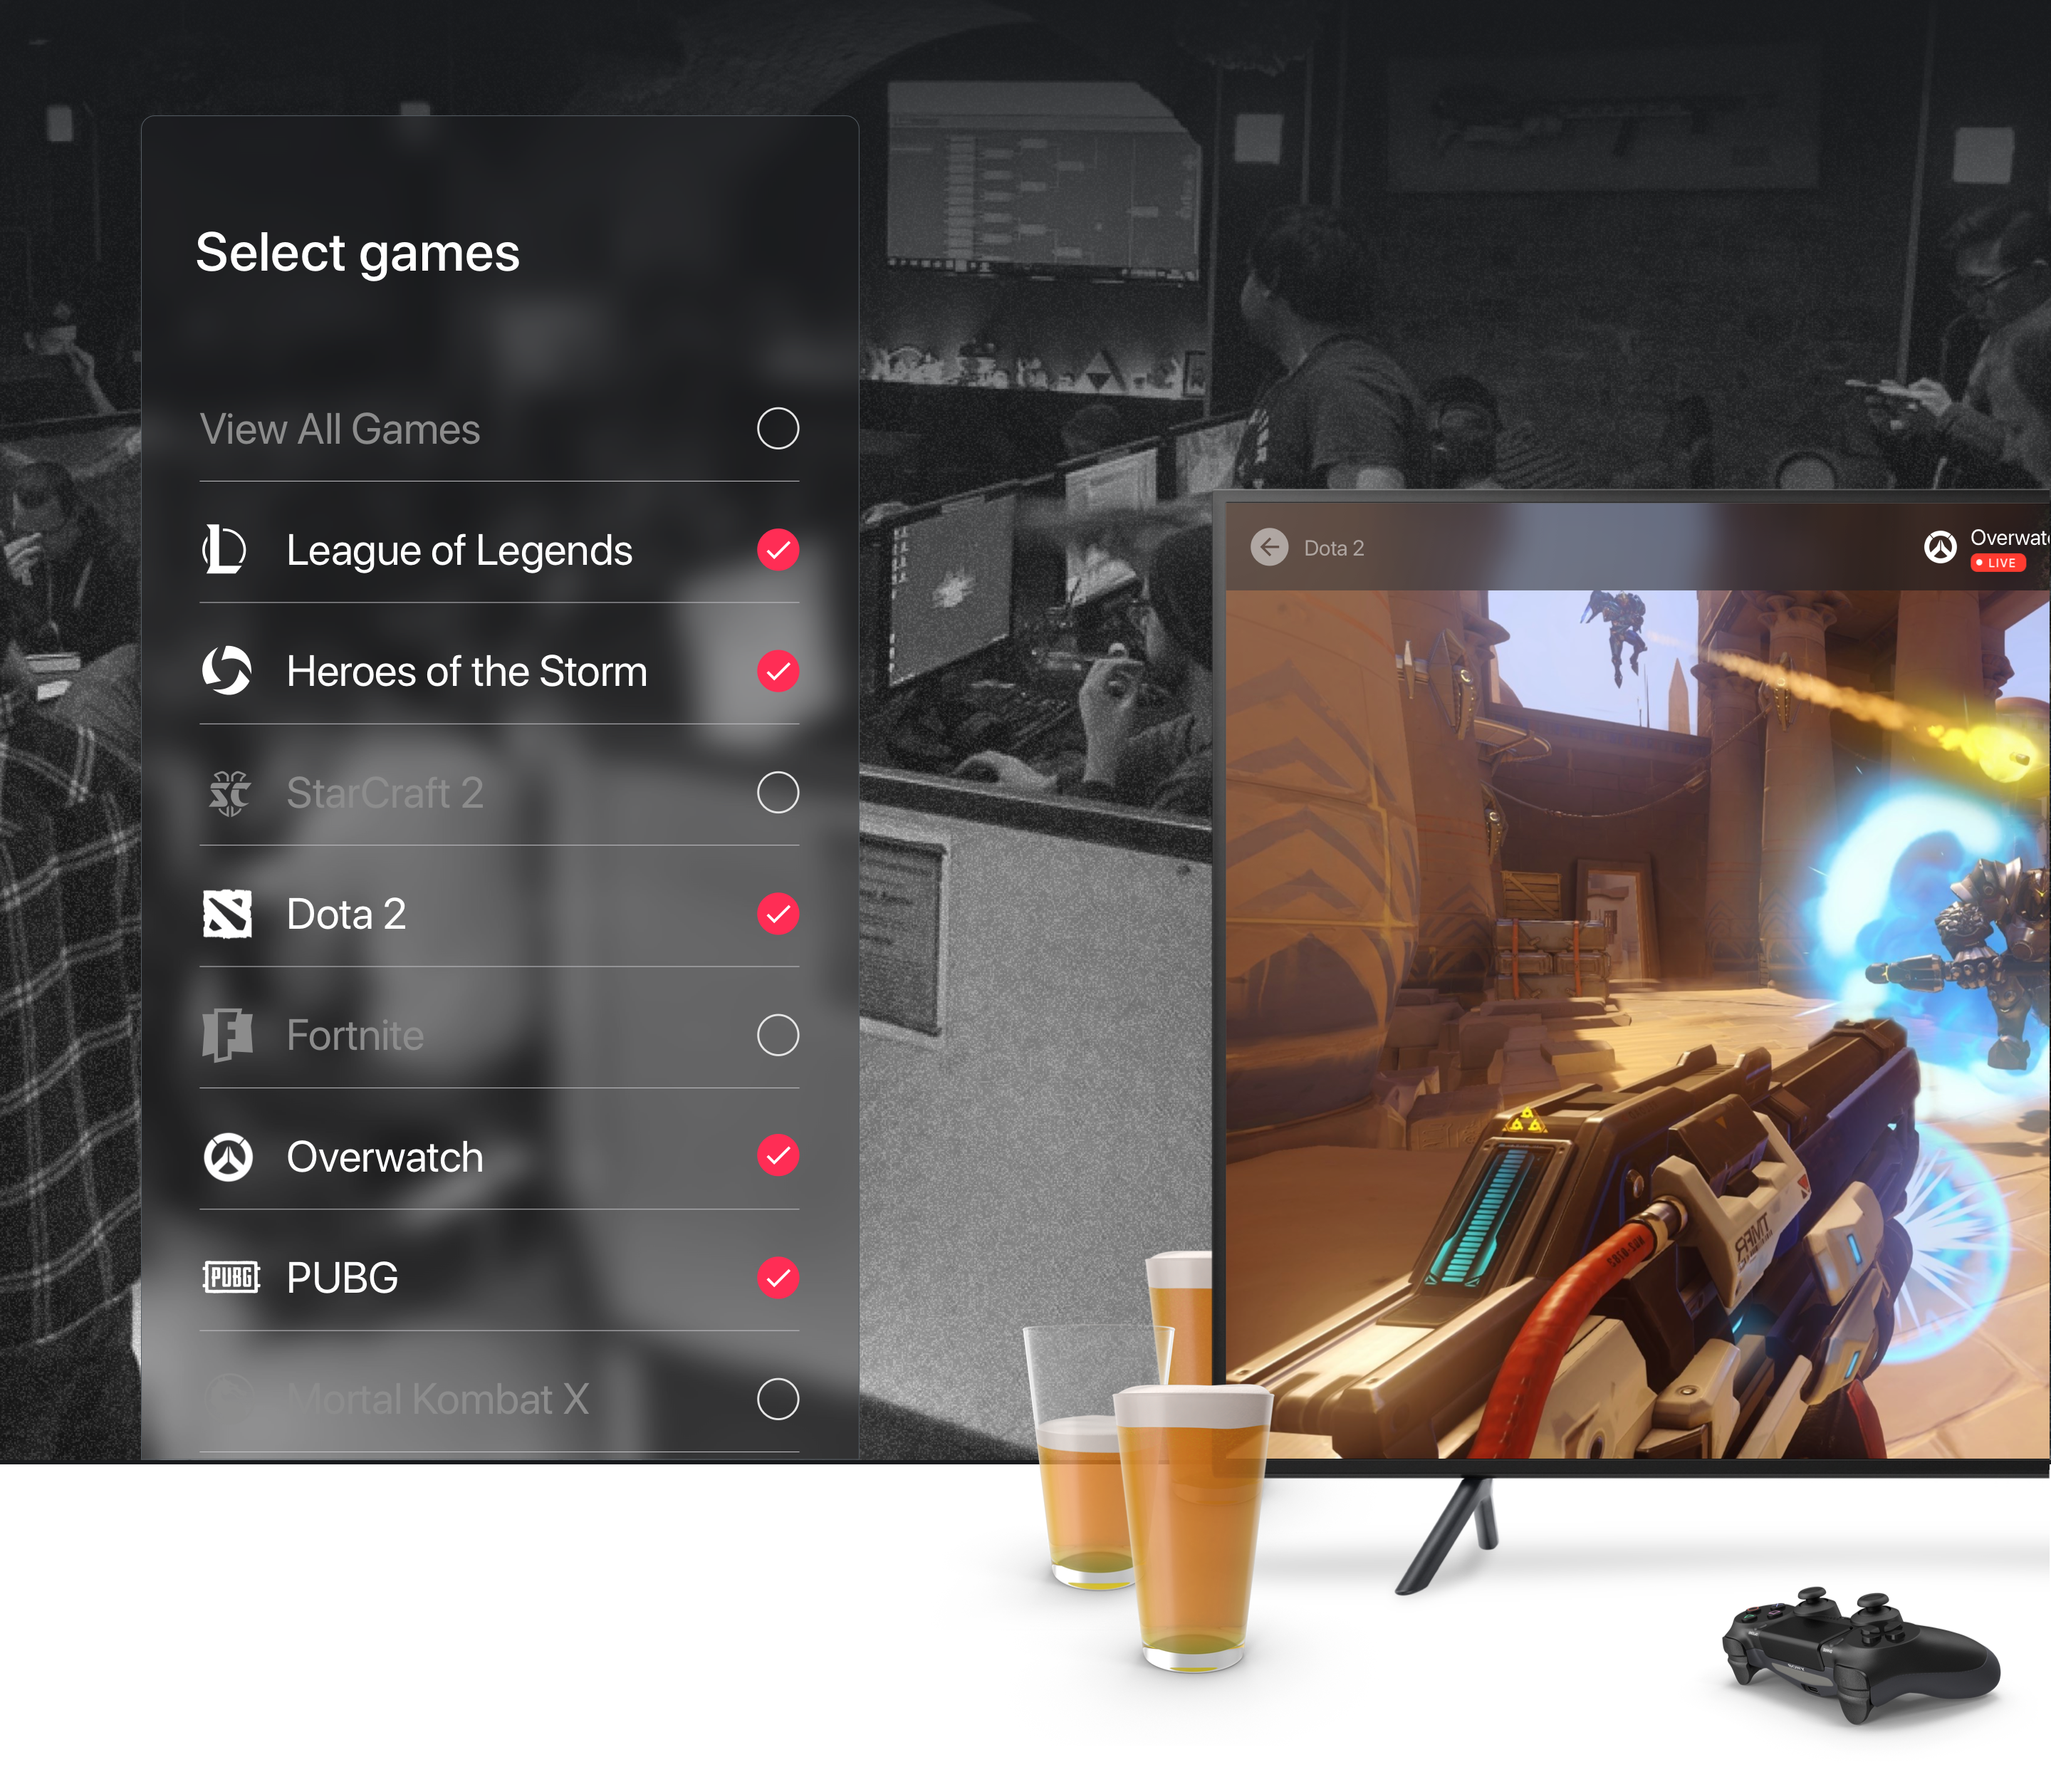 UI\UX Case Study: Designing eSports for TV - UX Planet